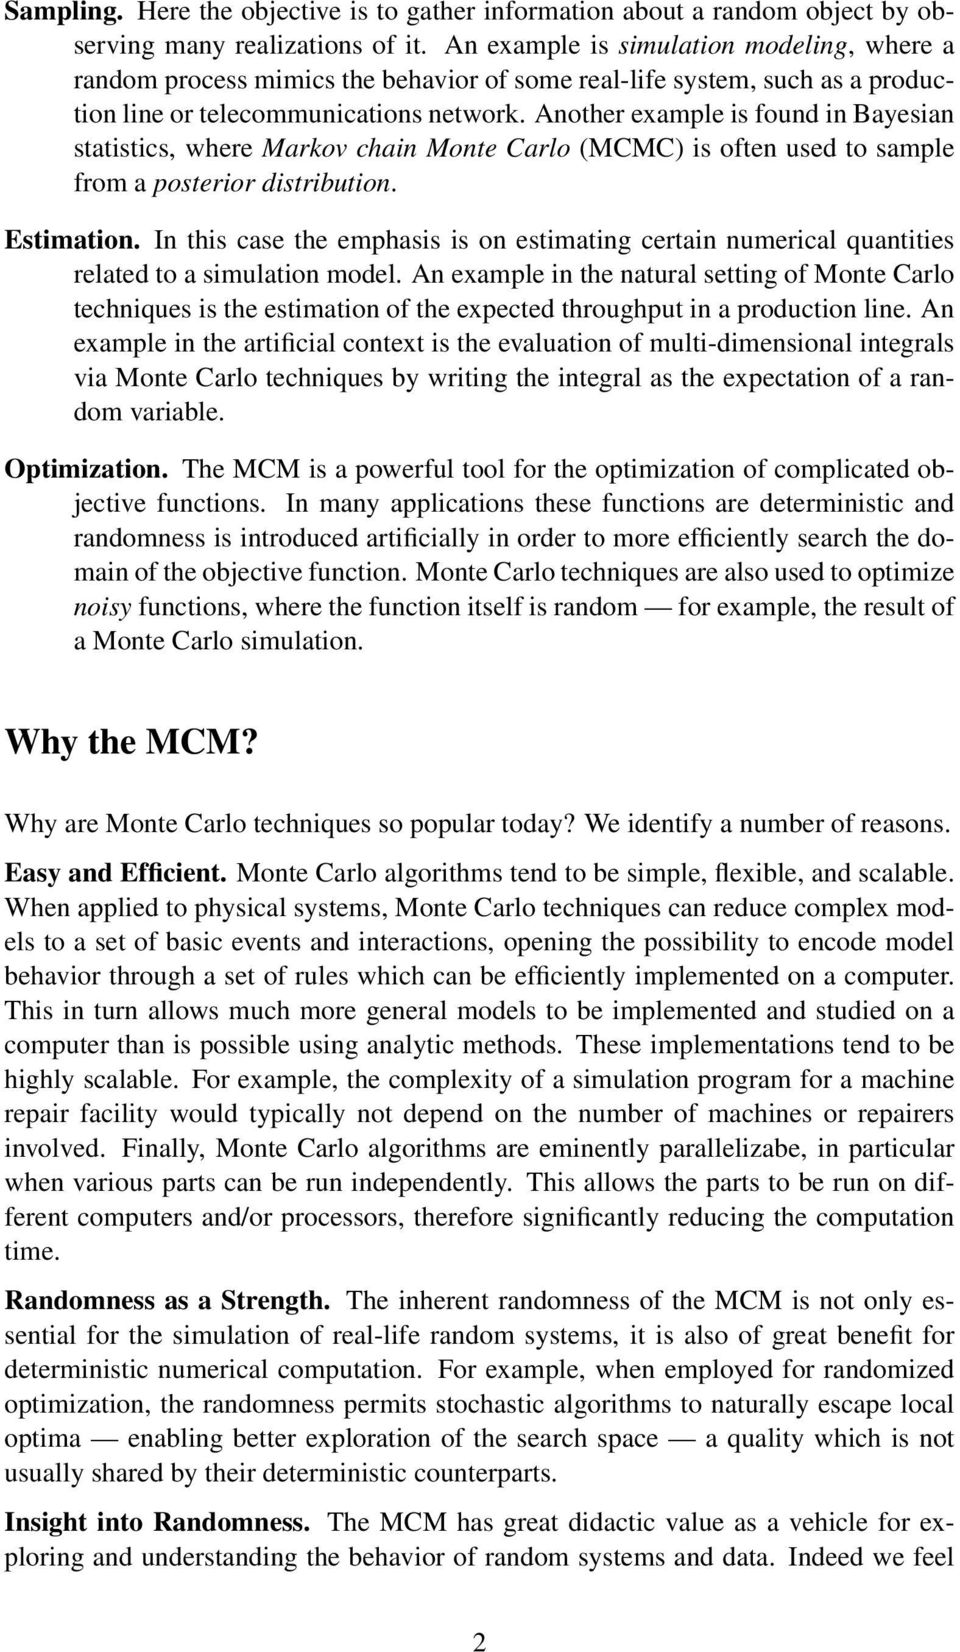 Why the Monte Carlo Method is so important today - PDF